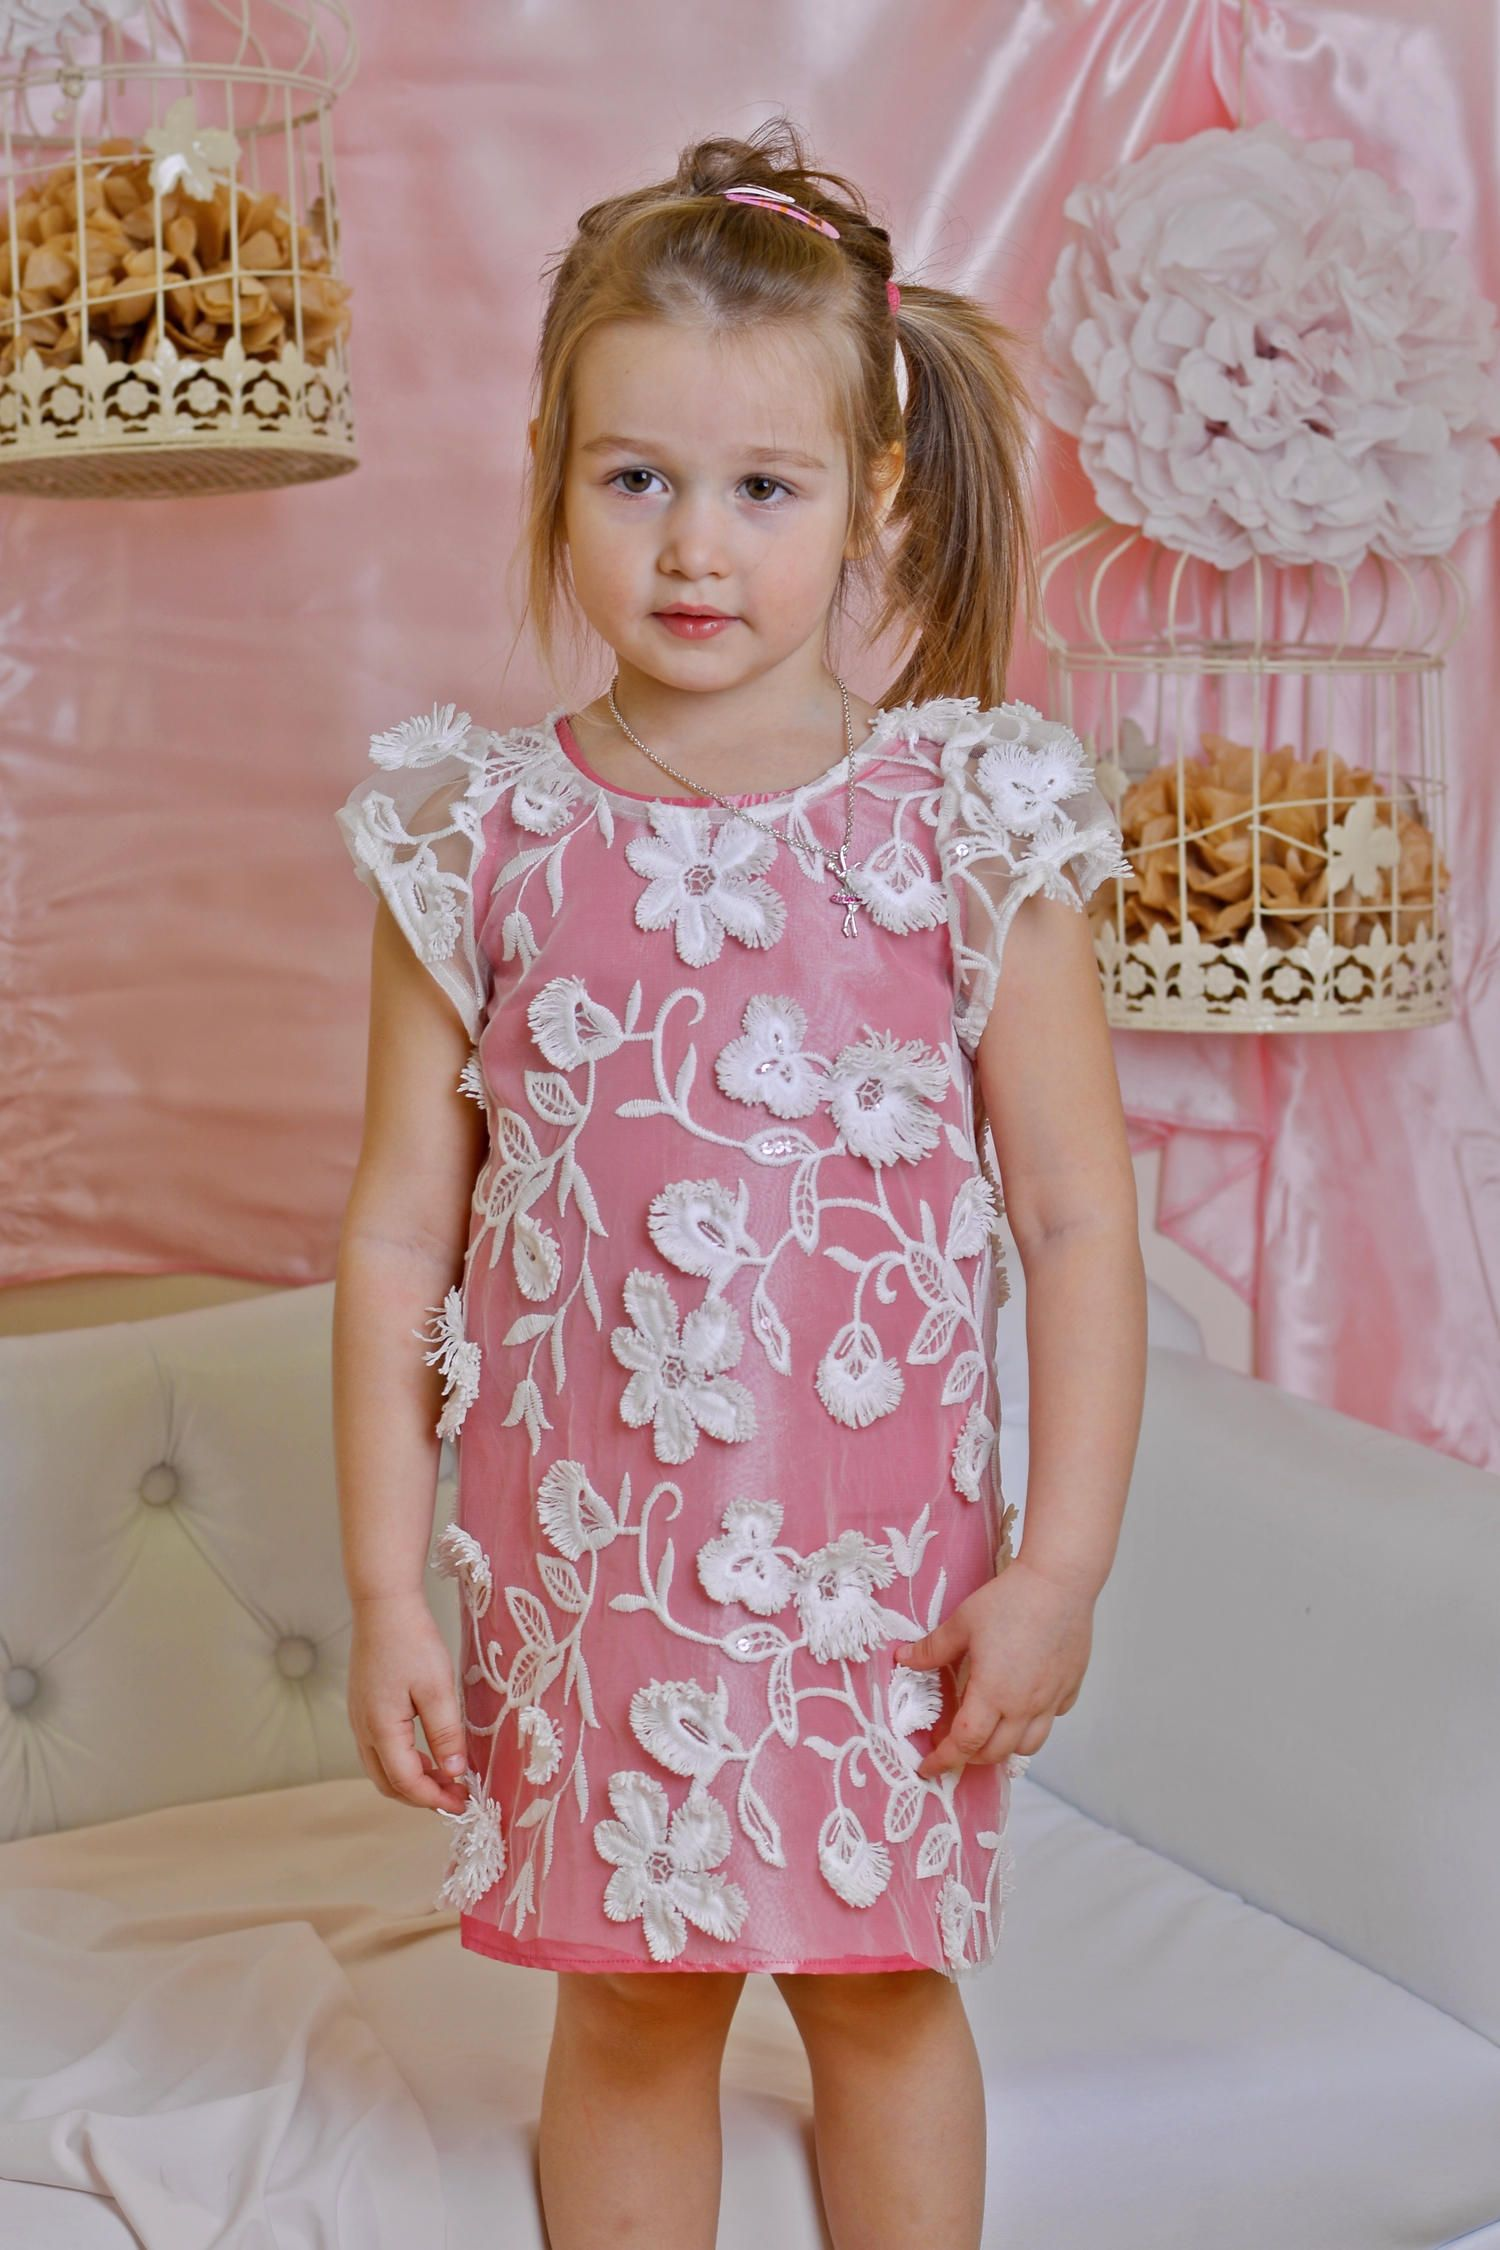 Pink bridesmaid lace dress girl attending wedding guest dresses pink bridesmaid lace dress girl attending wedding guest dresses tender dress for kids children ombrellifo Gallery